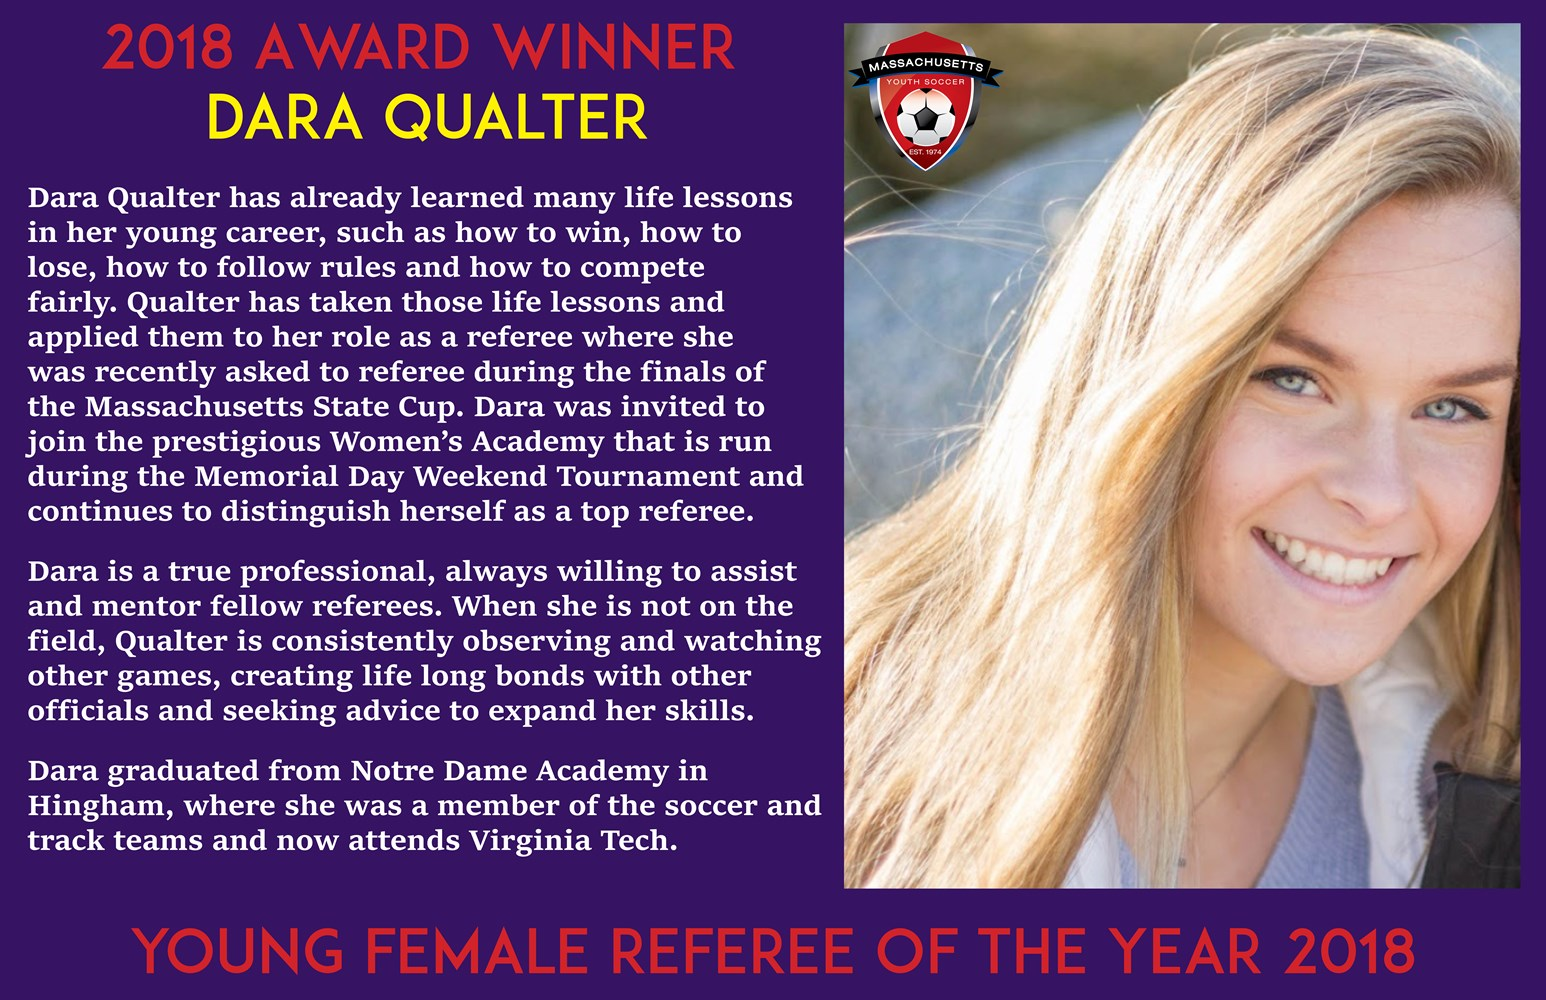 2018_Young_Female_Referee-_Dara_Qualter